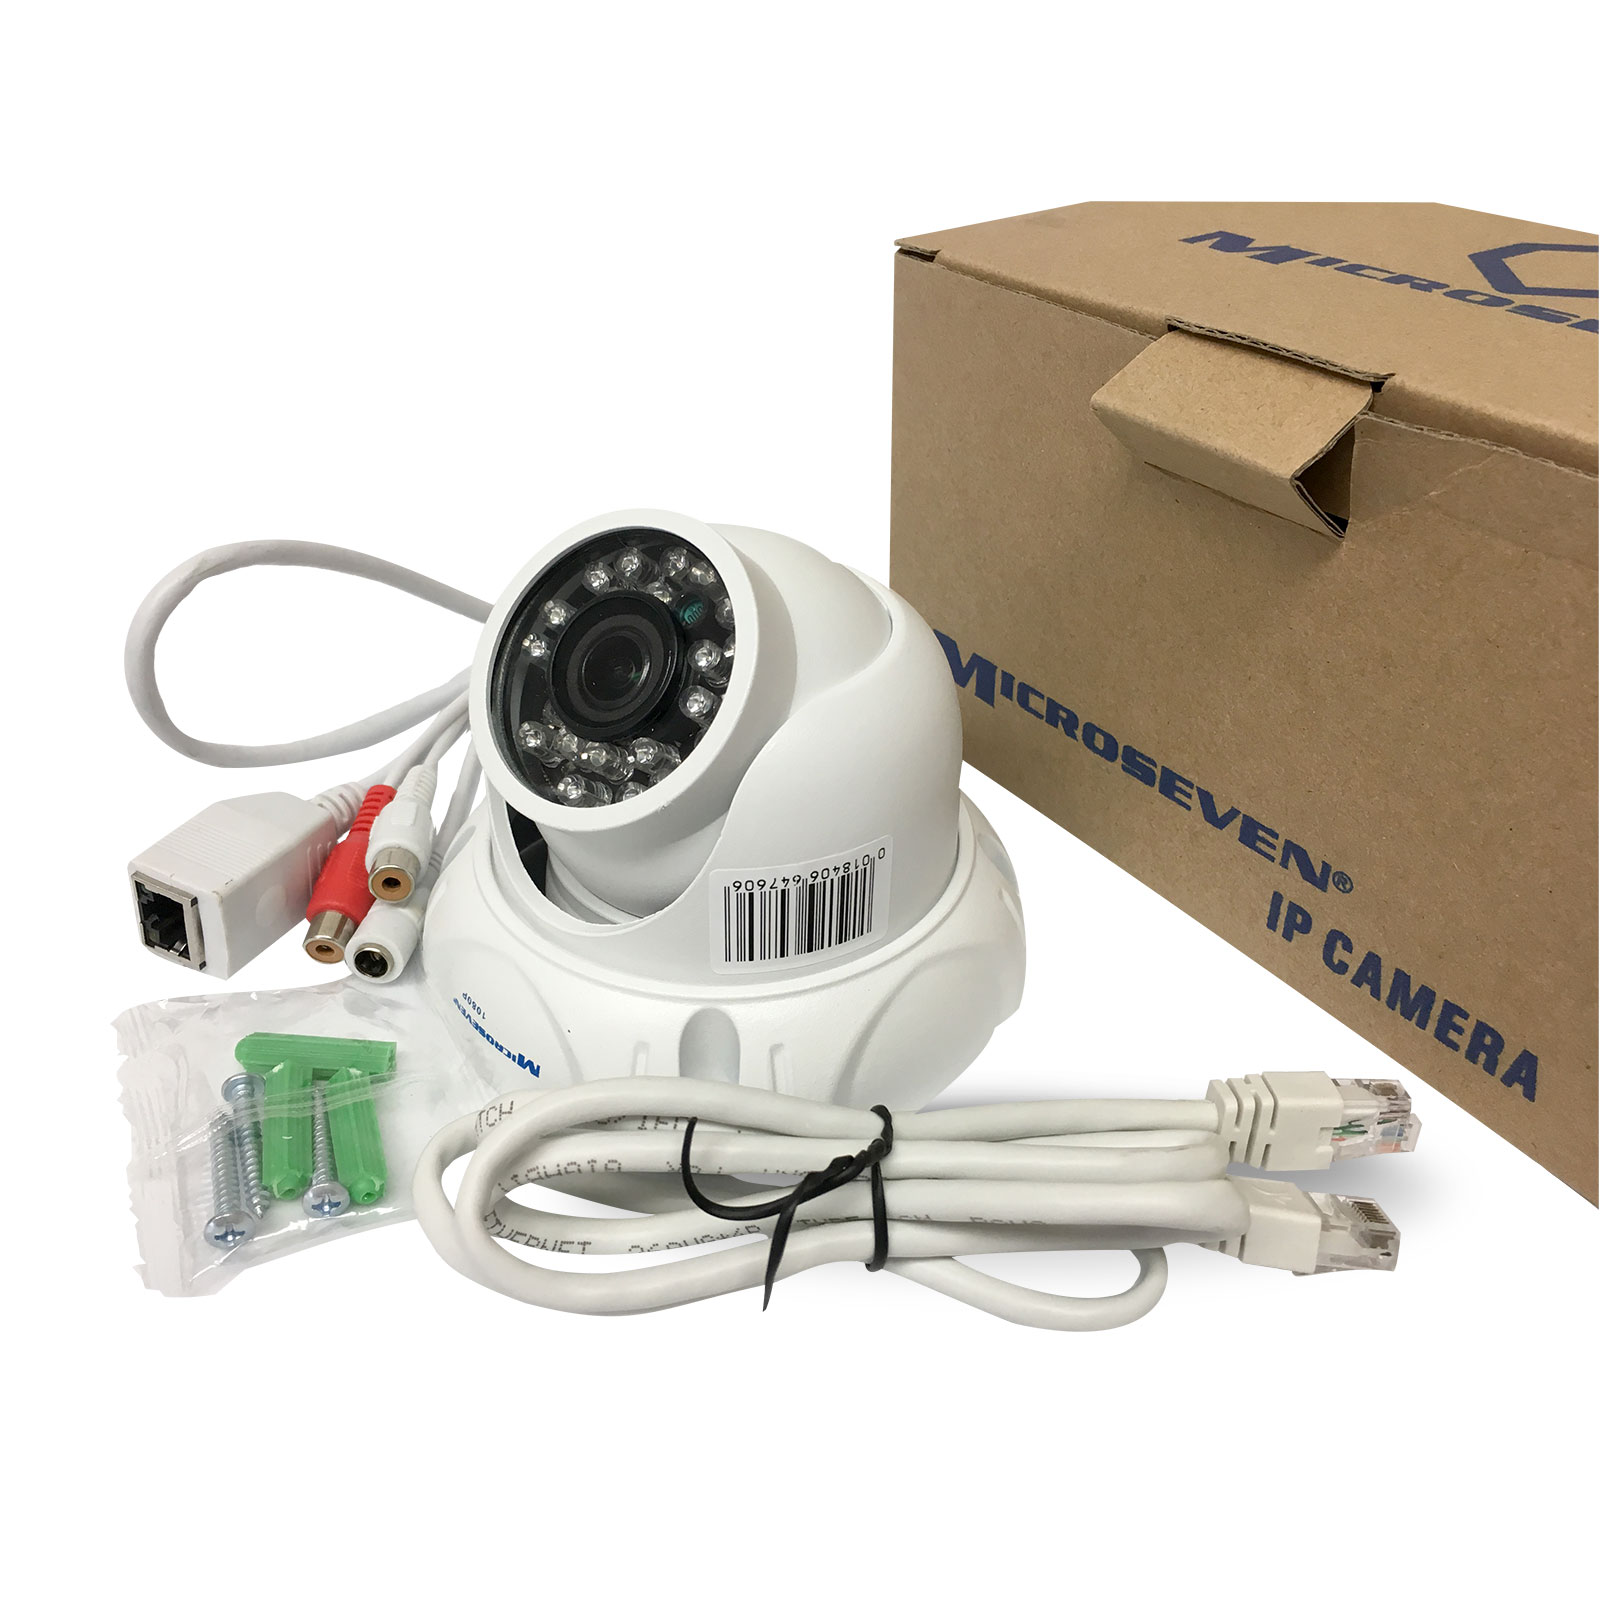 "Microseven Open Source ProHD 1080P / 30fps 1/2.5"" COMS Ultra-Wide View Angle (150°) 3MP Lens +Two Way Audio P2P Dome IP Camera Build-in POE Day & Night Indoor / Outdoor-Compatible with Any ONVIF NVR, Web GUI & Apps, VMS (Video Management System), Free M7 Cloud and Free Live Streaming on microseven.tv (With Built-in POE)/ Works with Alexa"